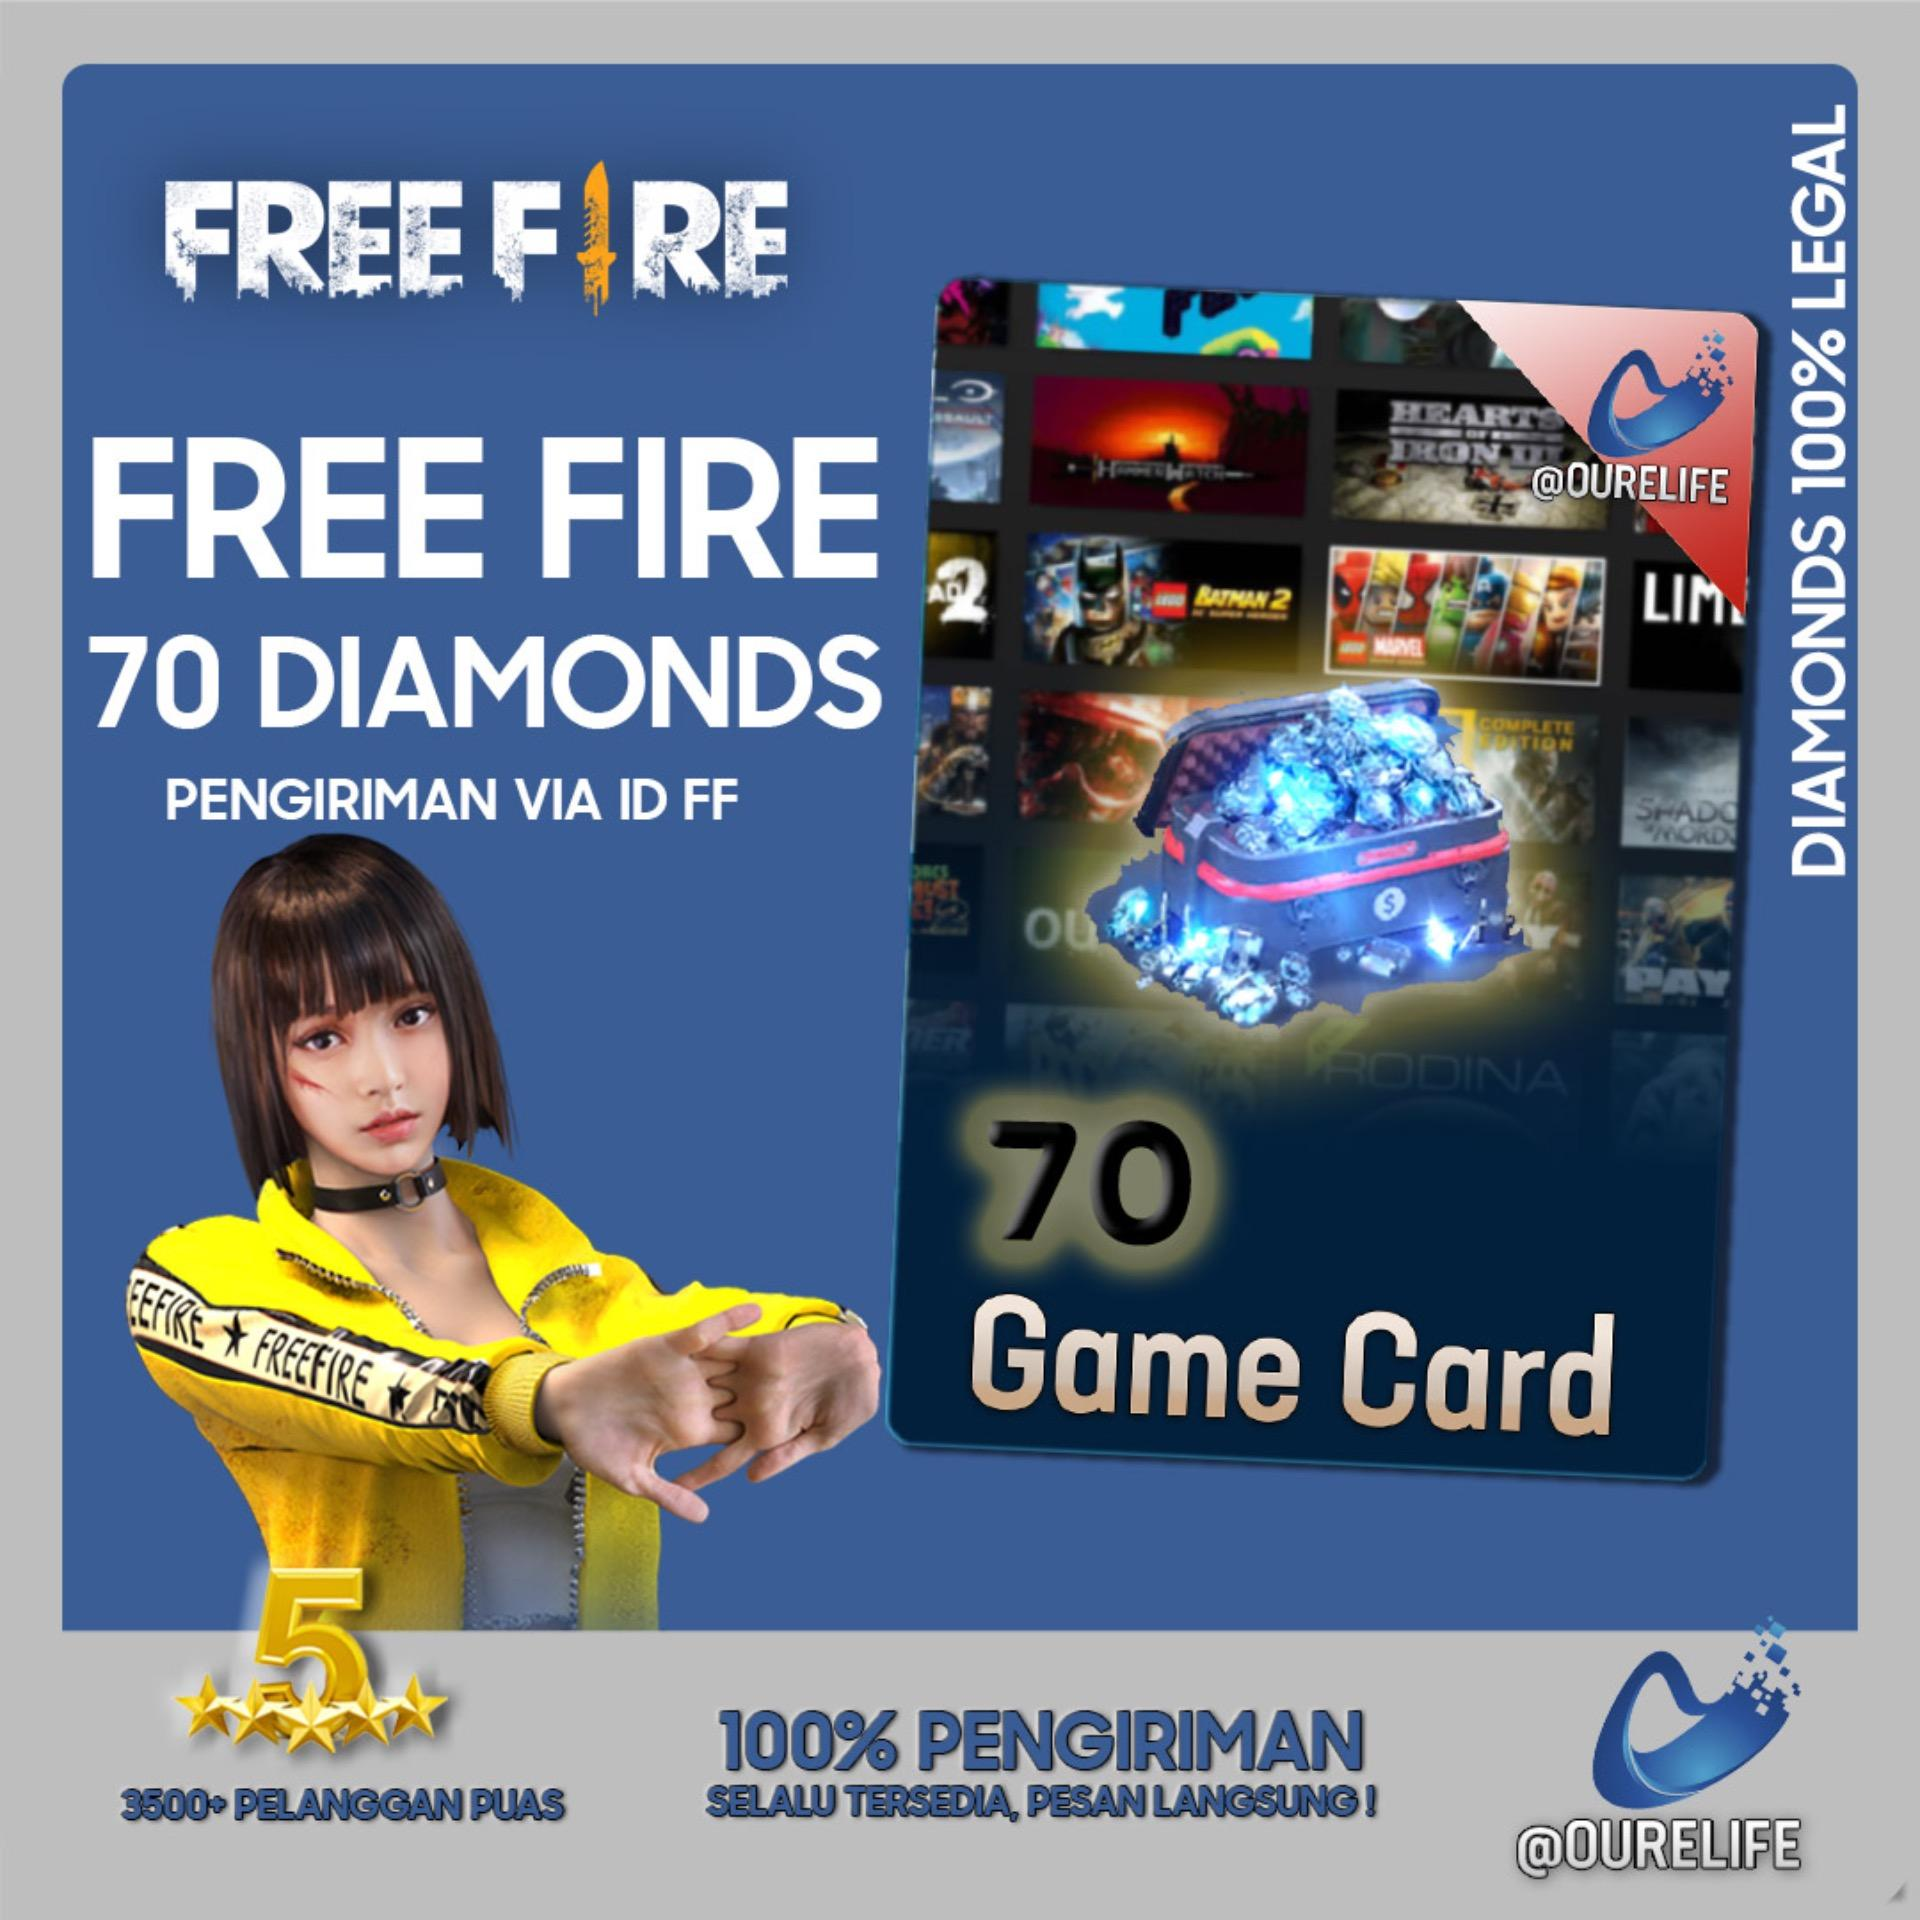 Top Up 70 Diamond Free Fire By Ourelife.co.id.